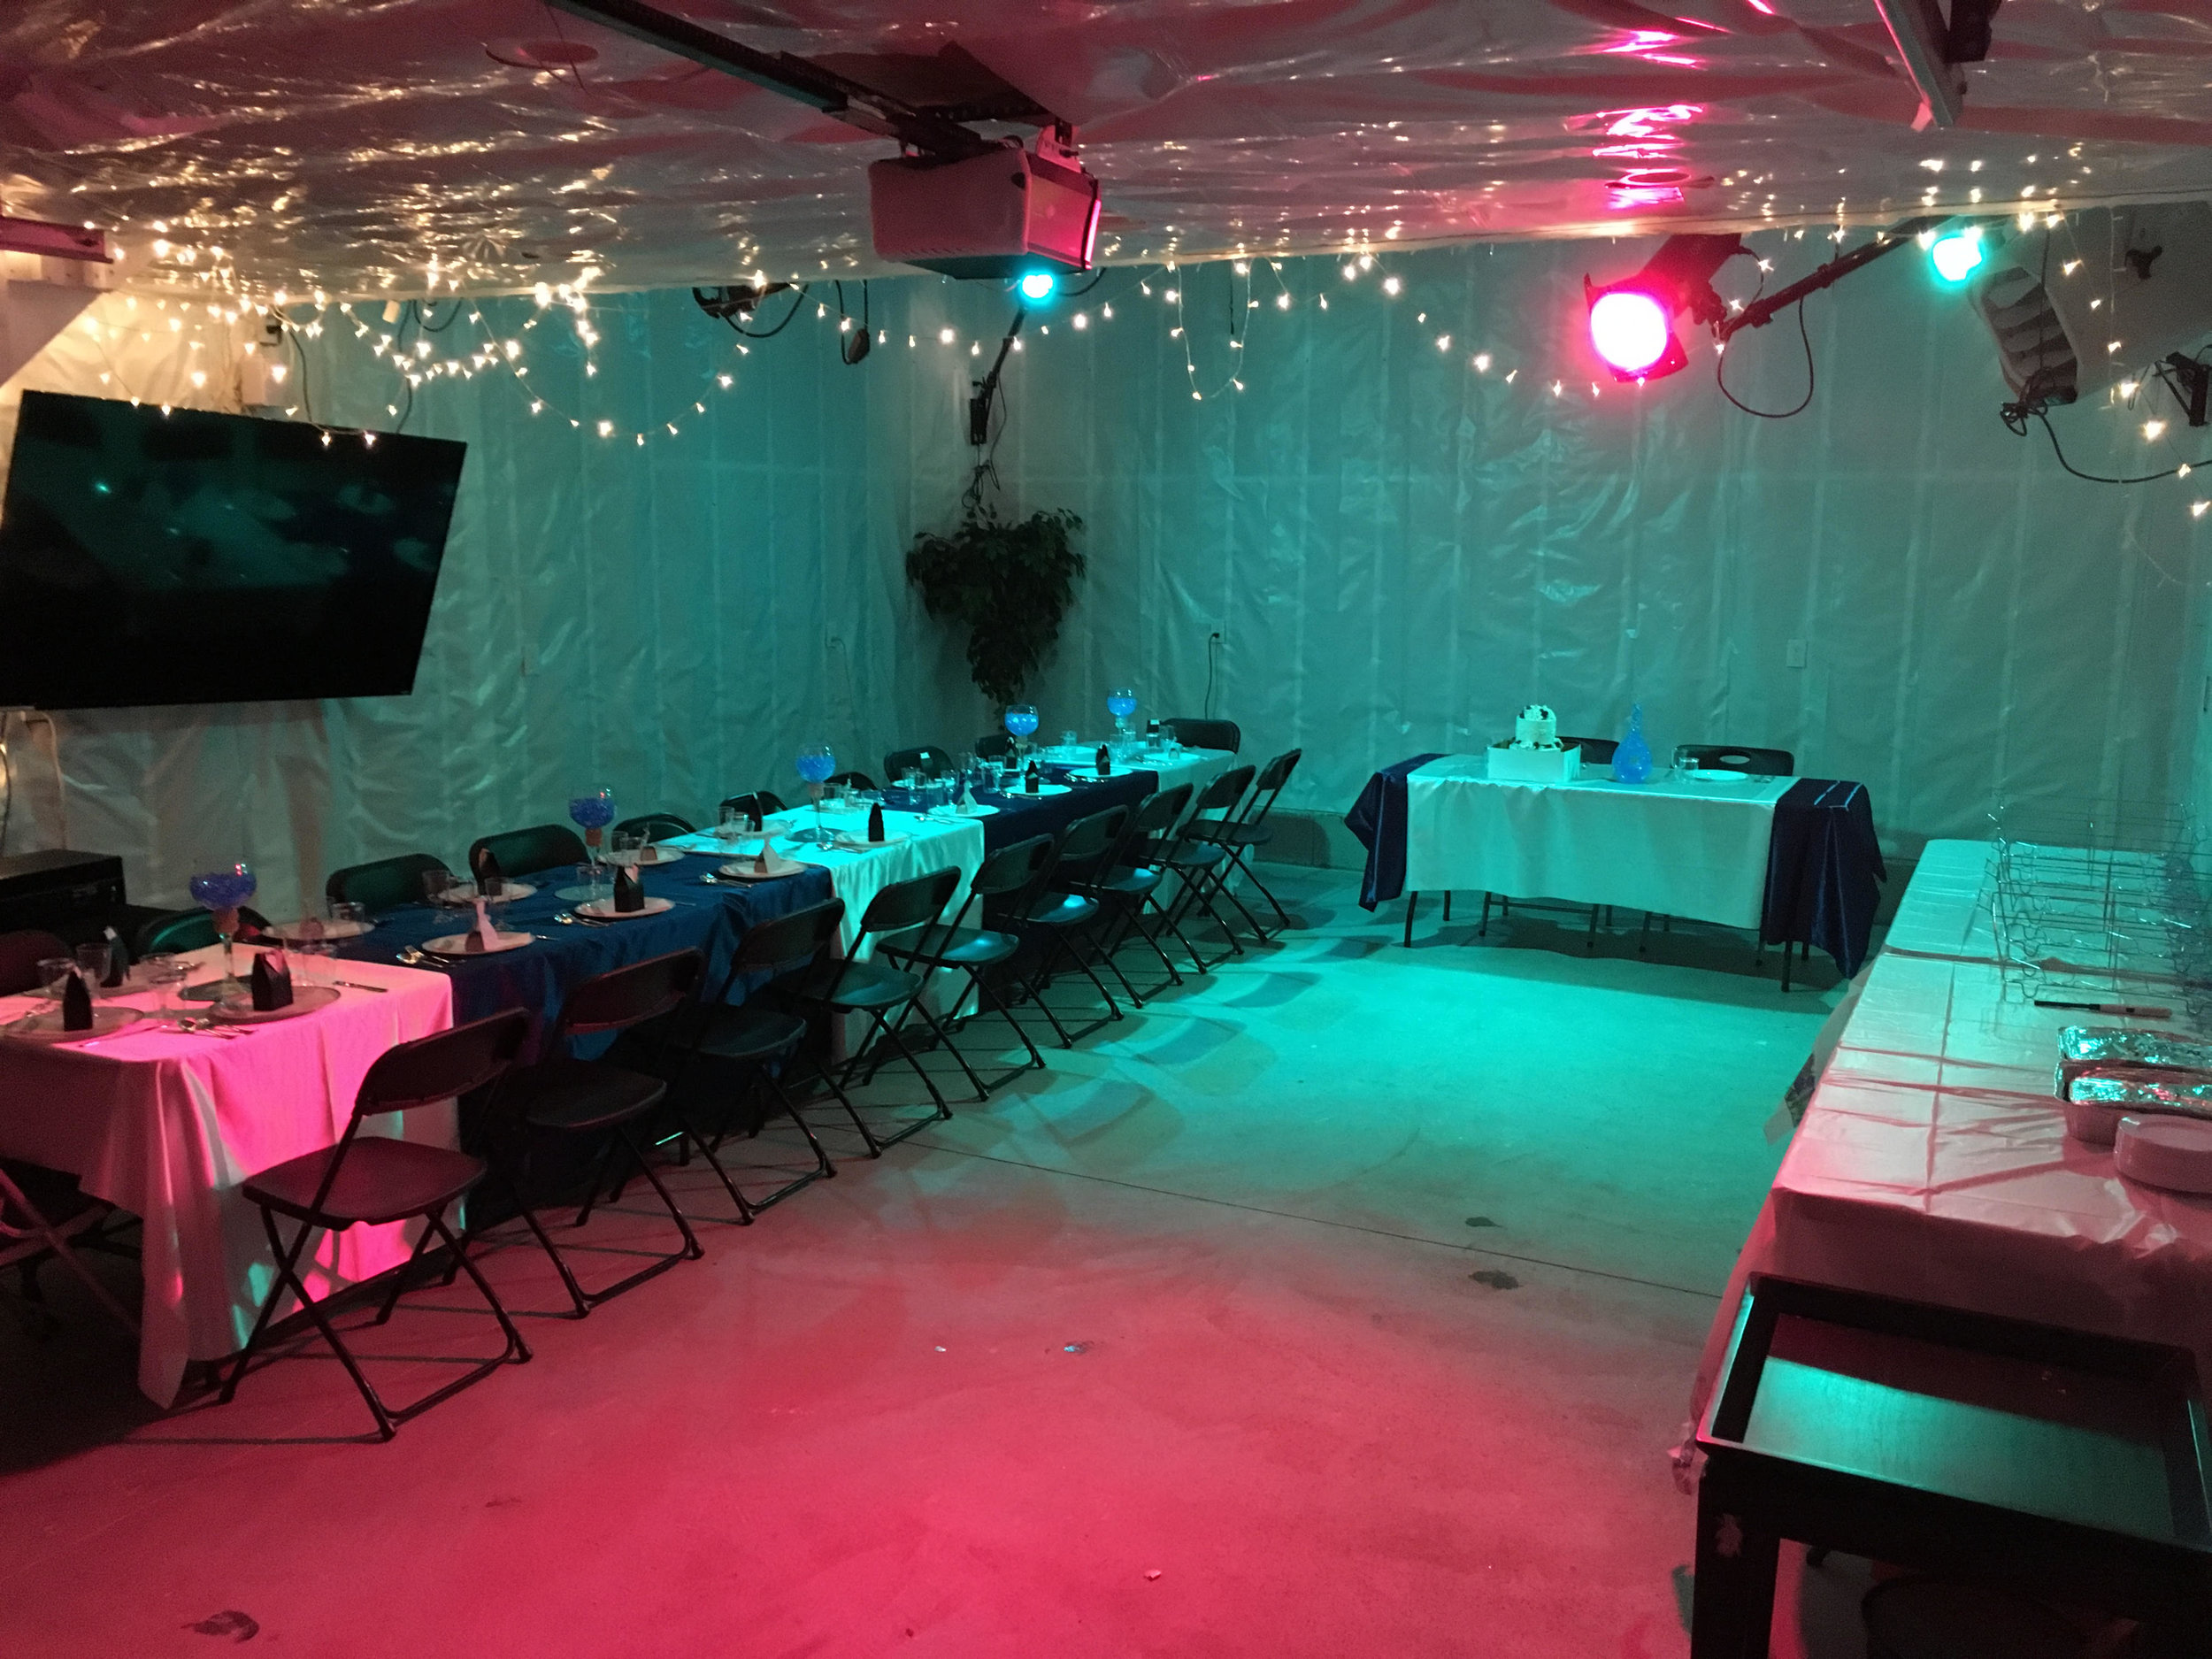 616+Meeting space at Boston Studio Rental-Parties Events -Affordable photo and video studio rental .jpg